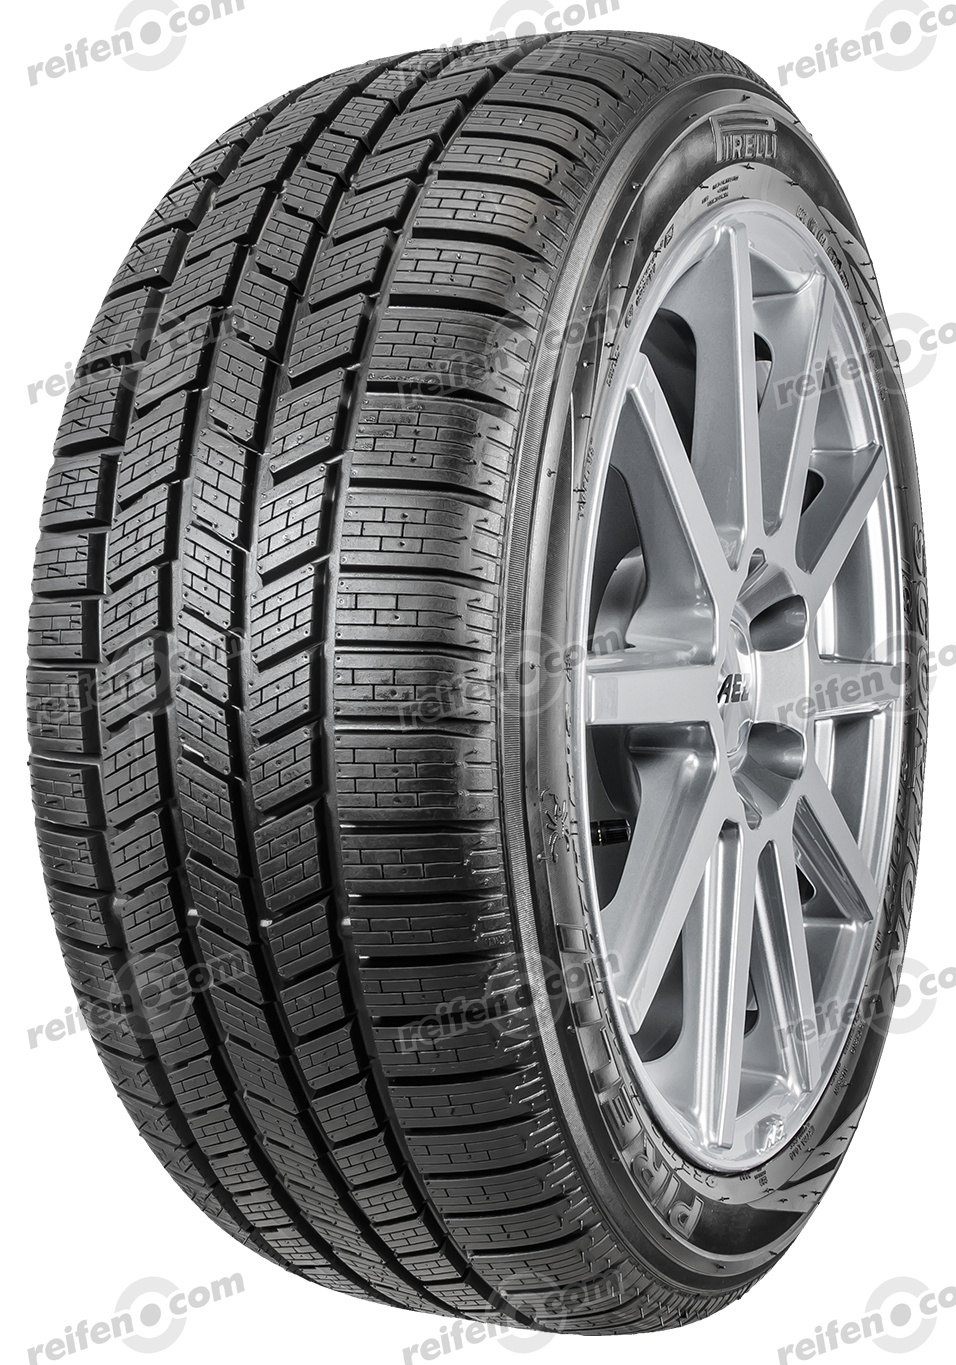 255/50 R19 107V Scorpion Ice & Snow XL N0 RB M+S  Scorpion Ice & Snow XL N0 RB M+S